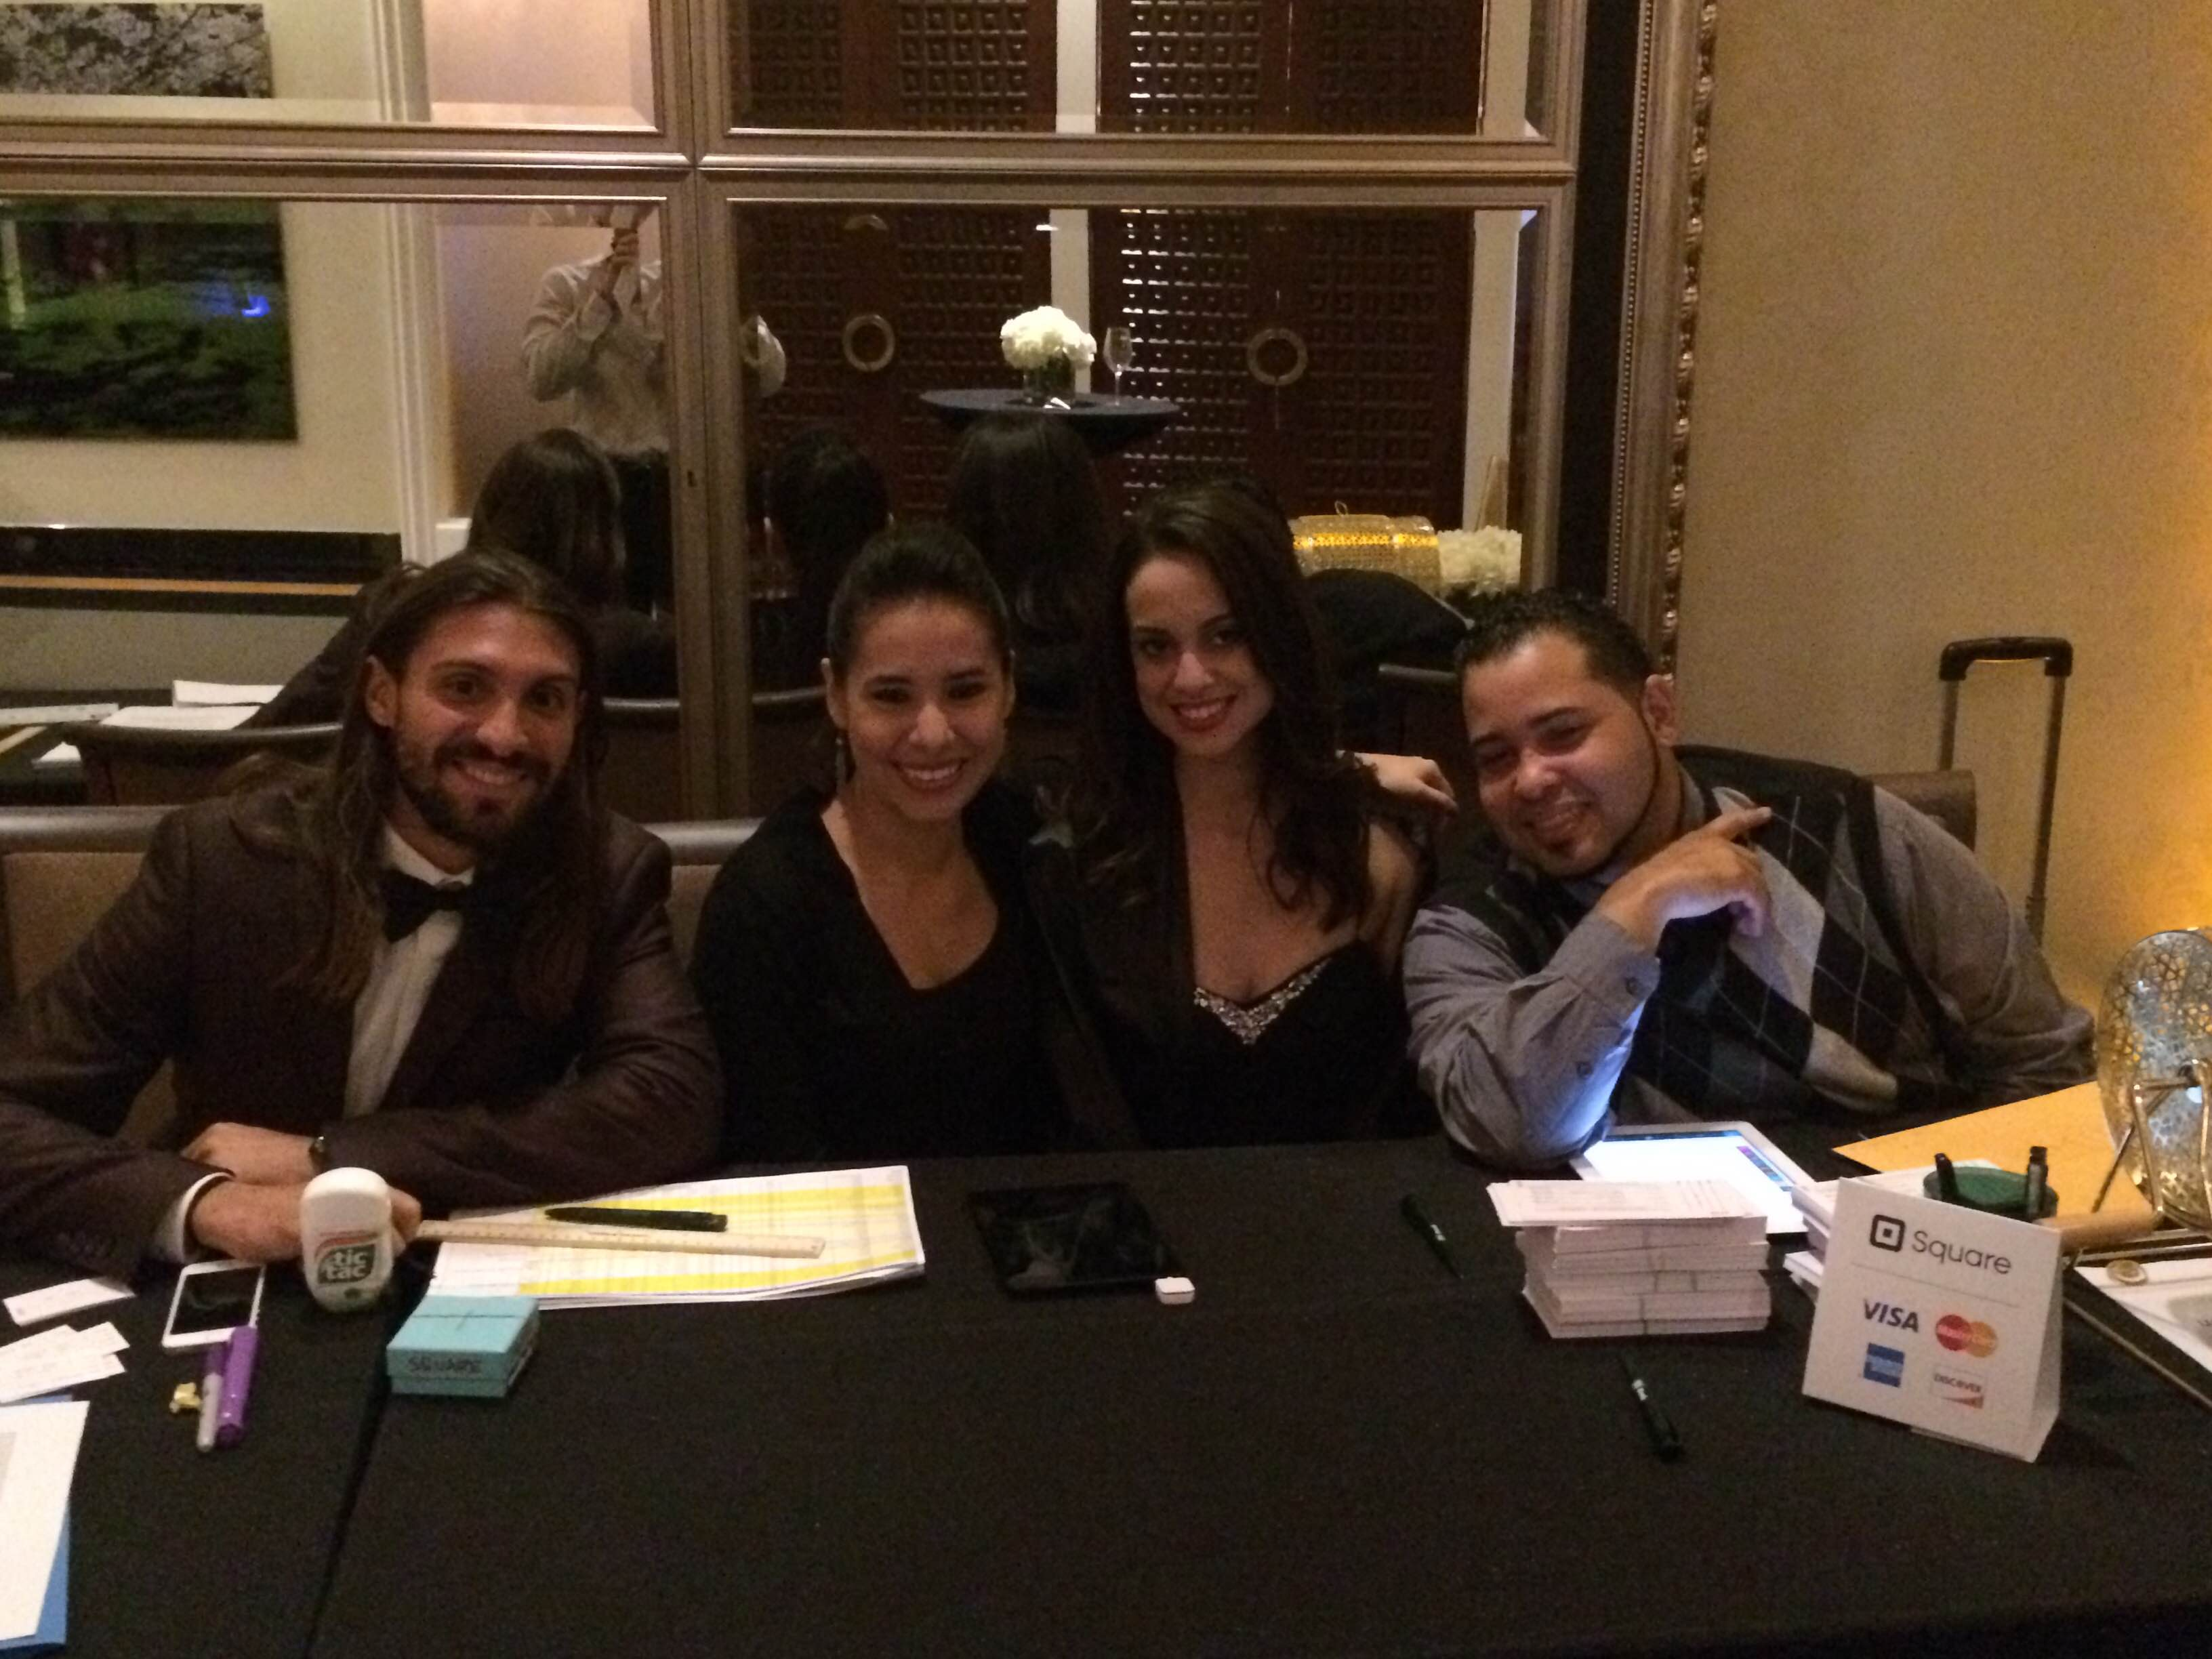 PTK Students From the Miami Campus Volunteer for the Cystic Fibrosis Foundation